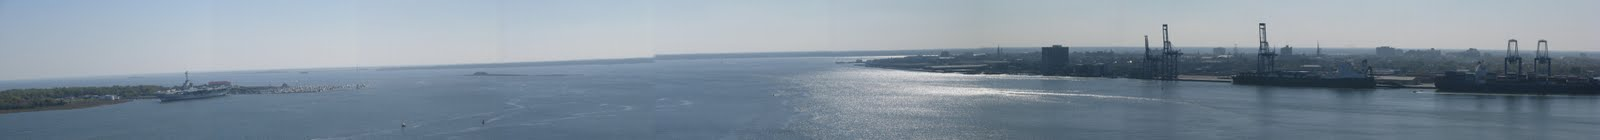 View of Charleston Harbor from Ravenel Bridge